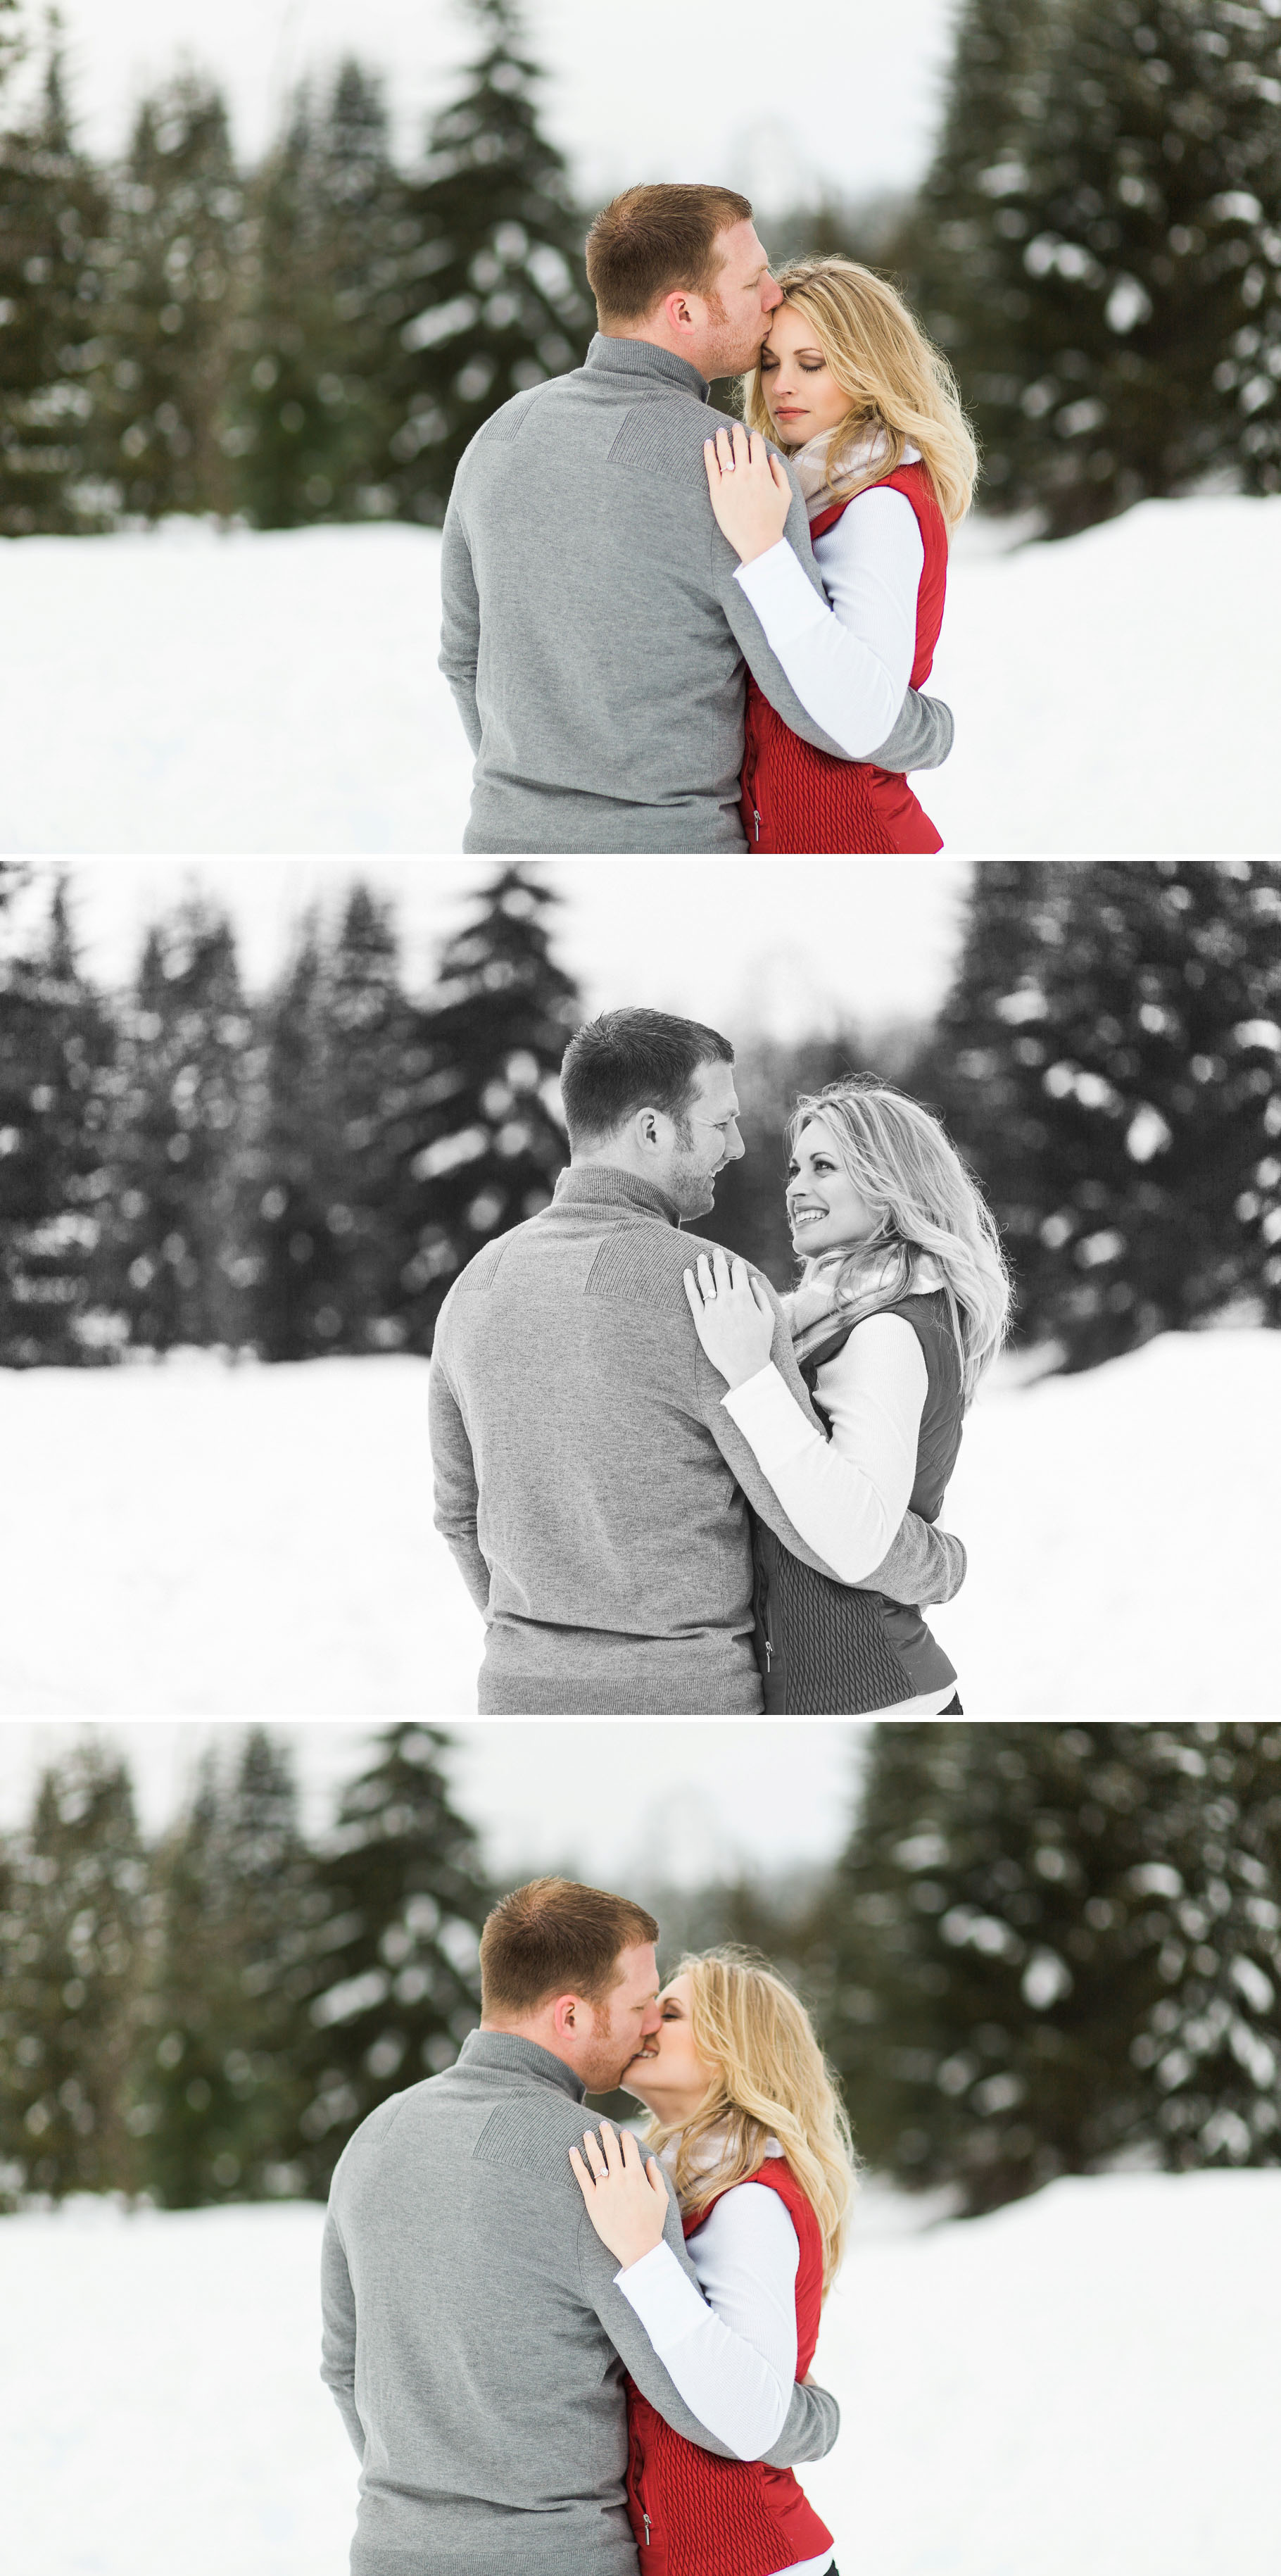 Snoqualmie-Pass-Seattle-Enagement-Photographer-Wedding-Photography-by-Betty-Elaine_0014